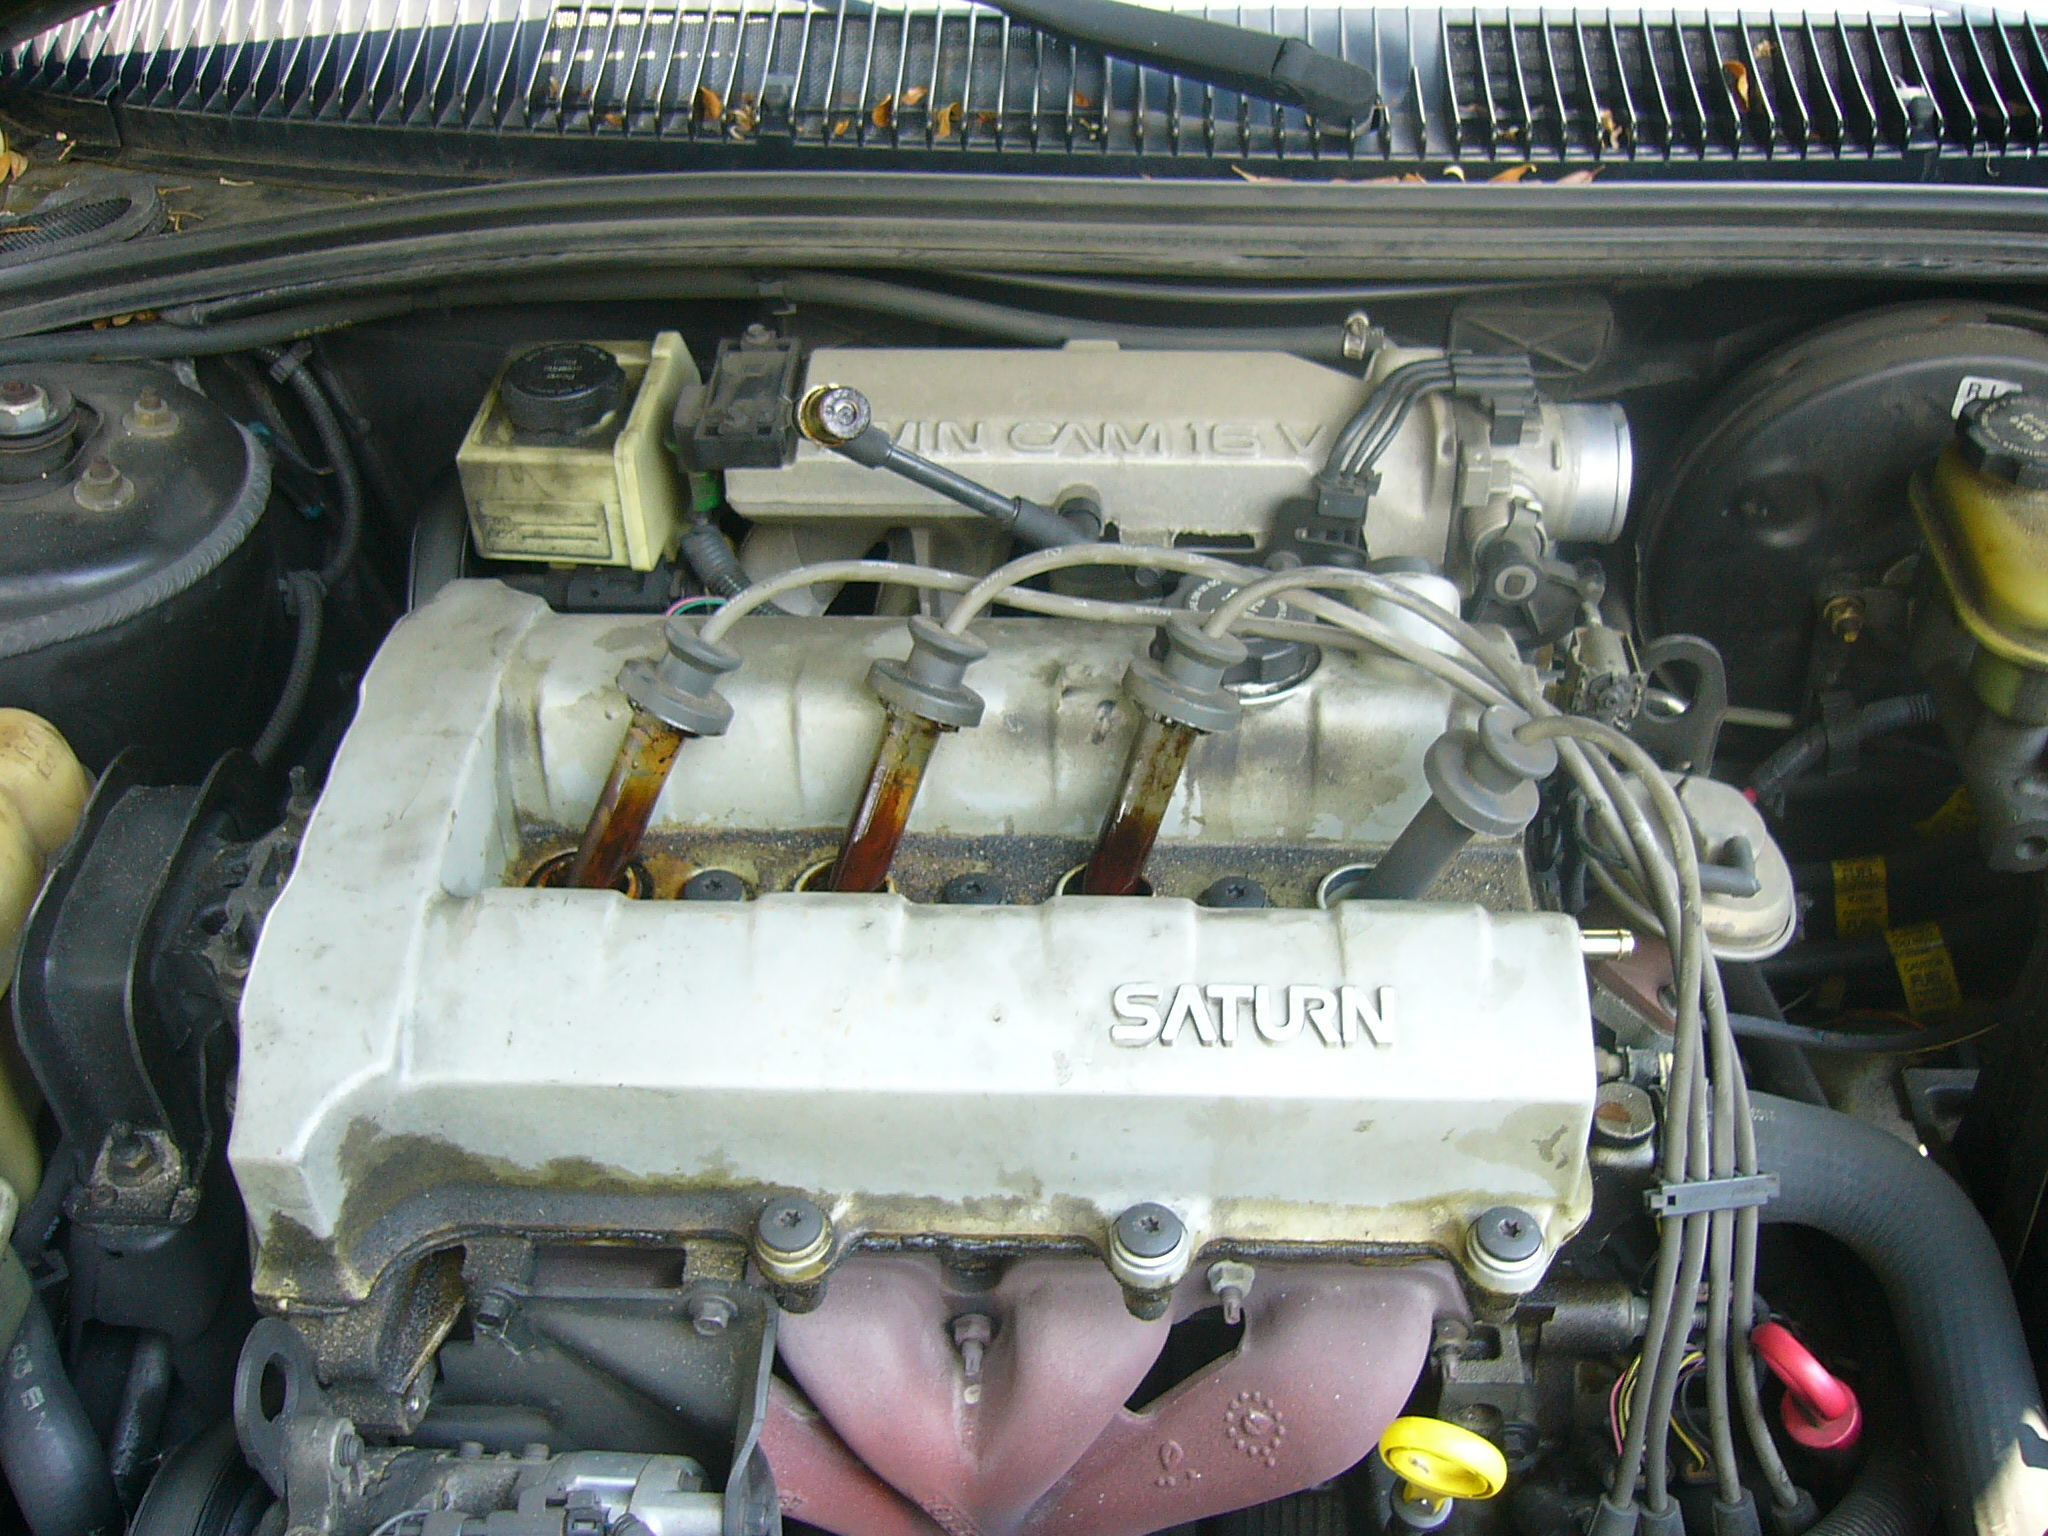 Replacing Your Car's Valve Cover Gasket: 10 Steps (with Pictures)